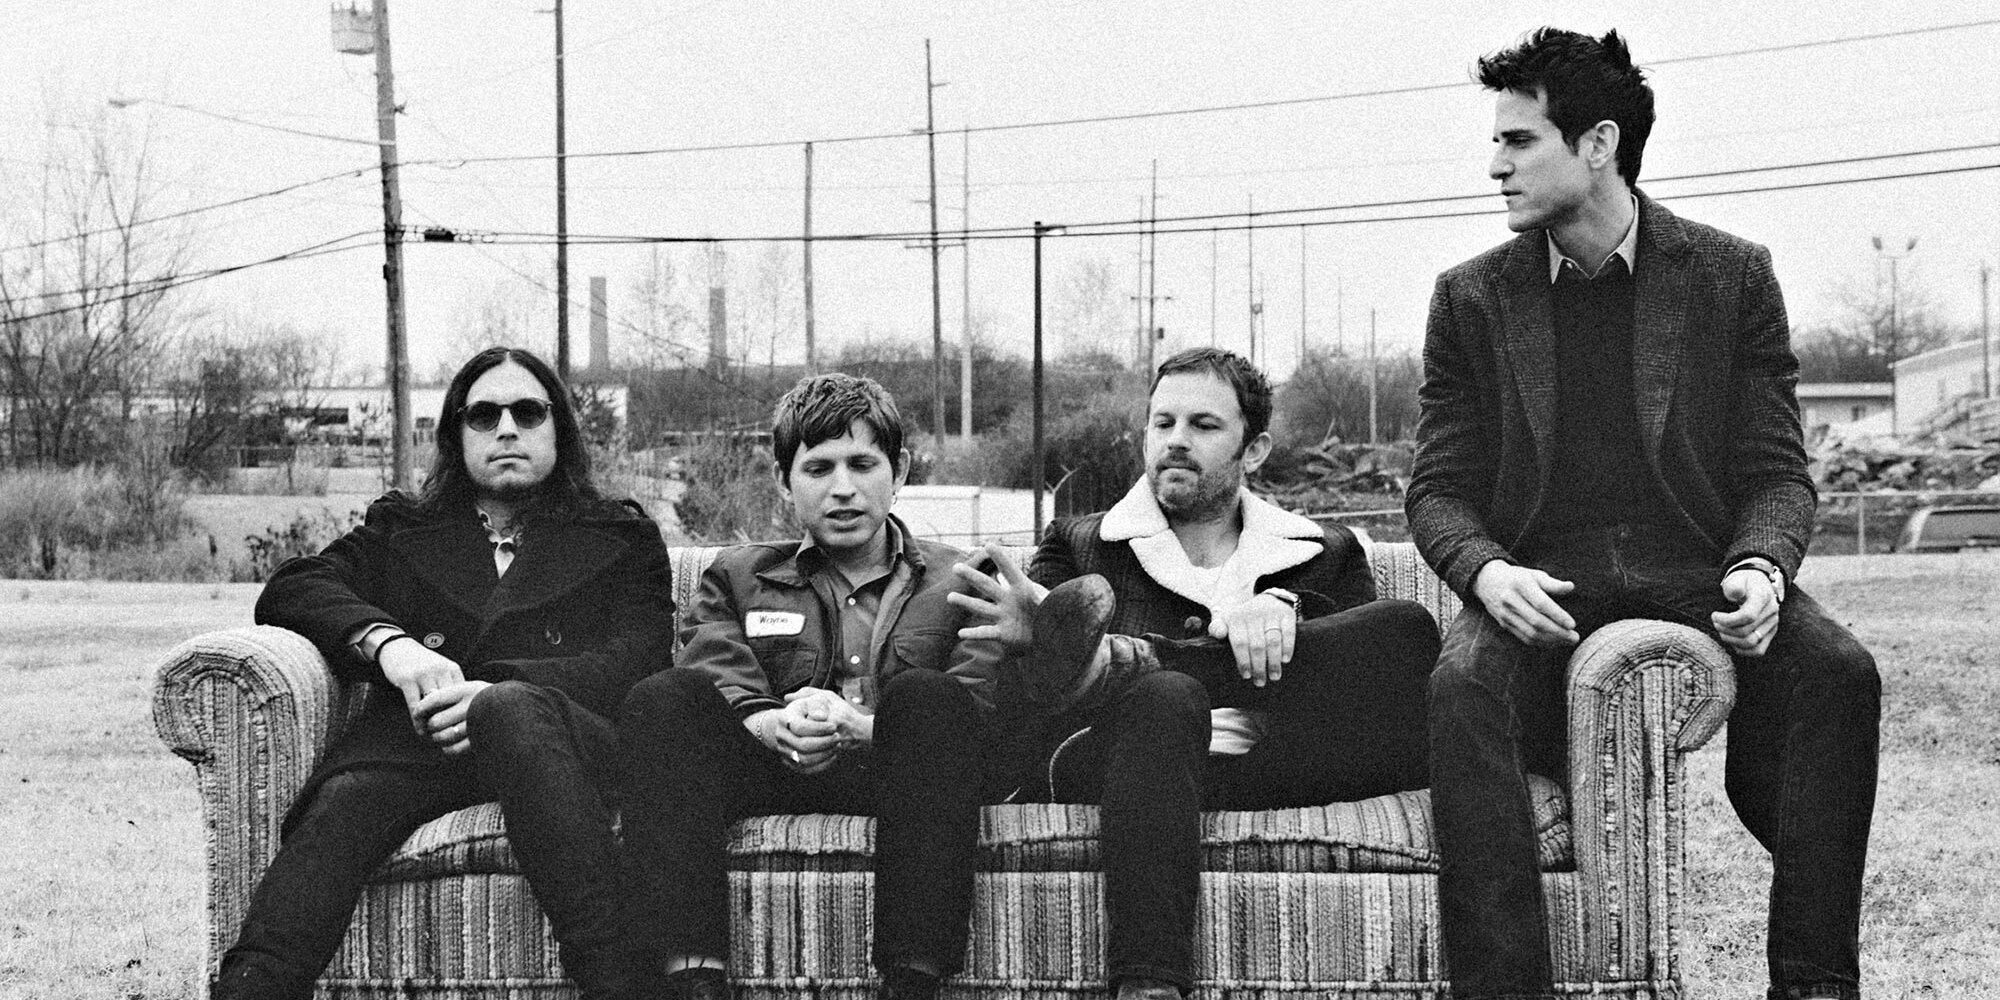 Kings of Leon on the challenges and growth behind new album 'When You See Yourself'